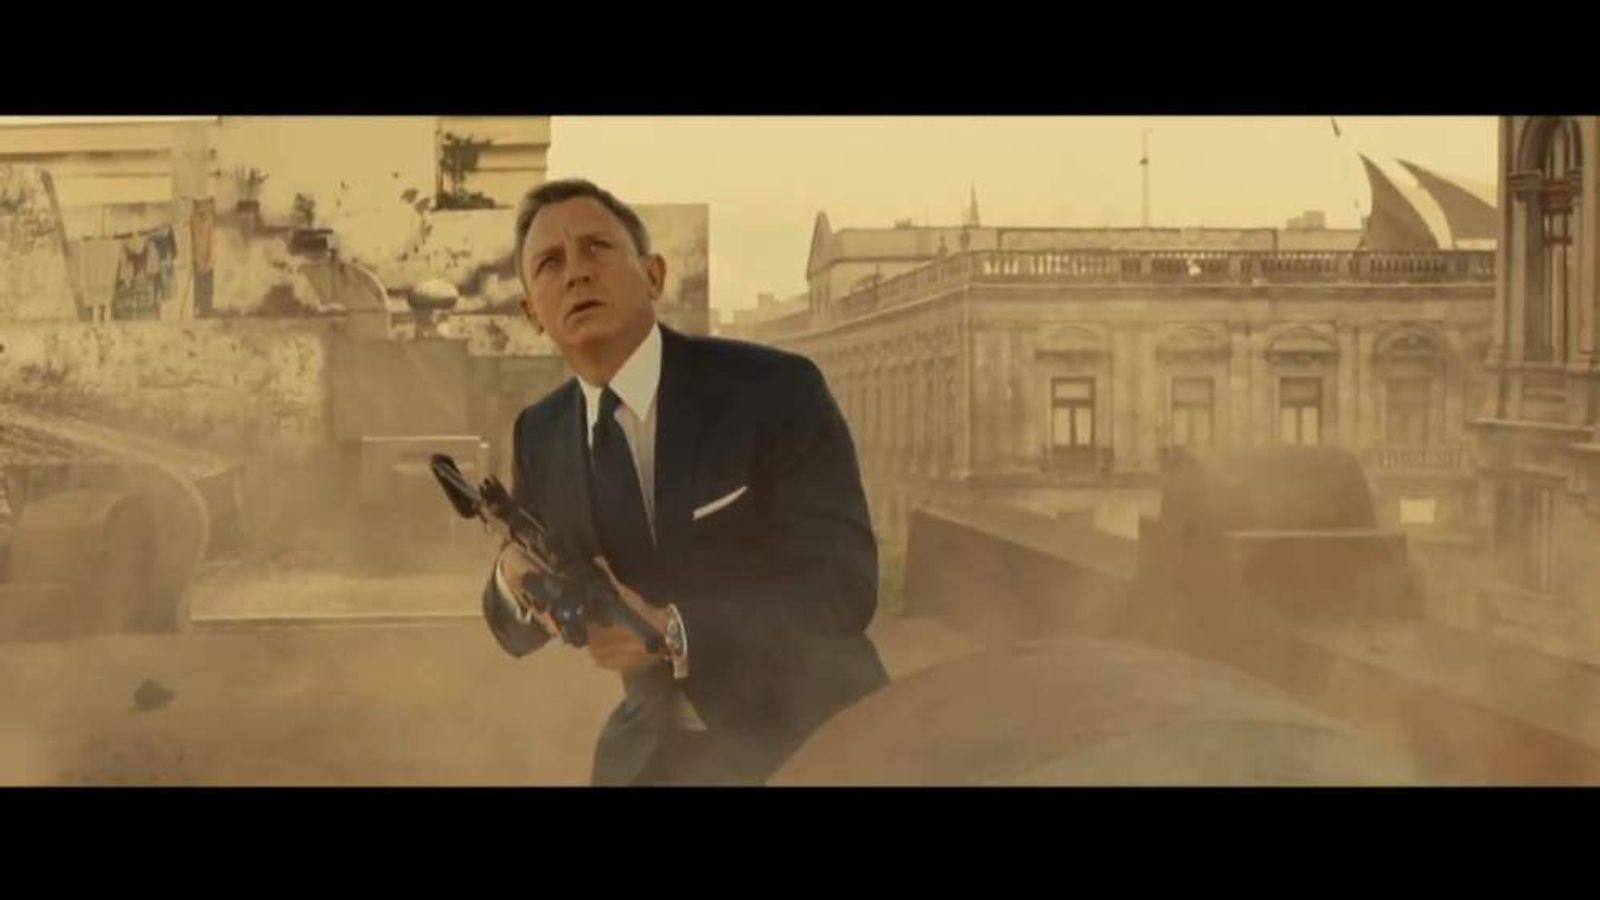 Final Spectre James Bond trailer released